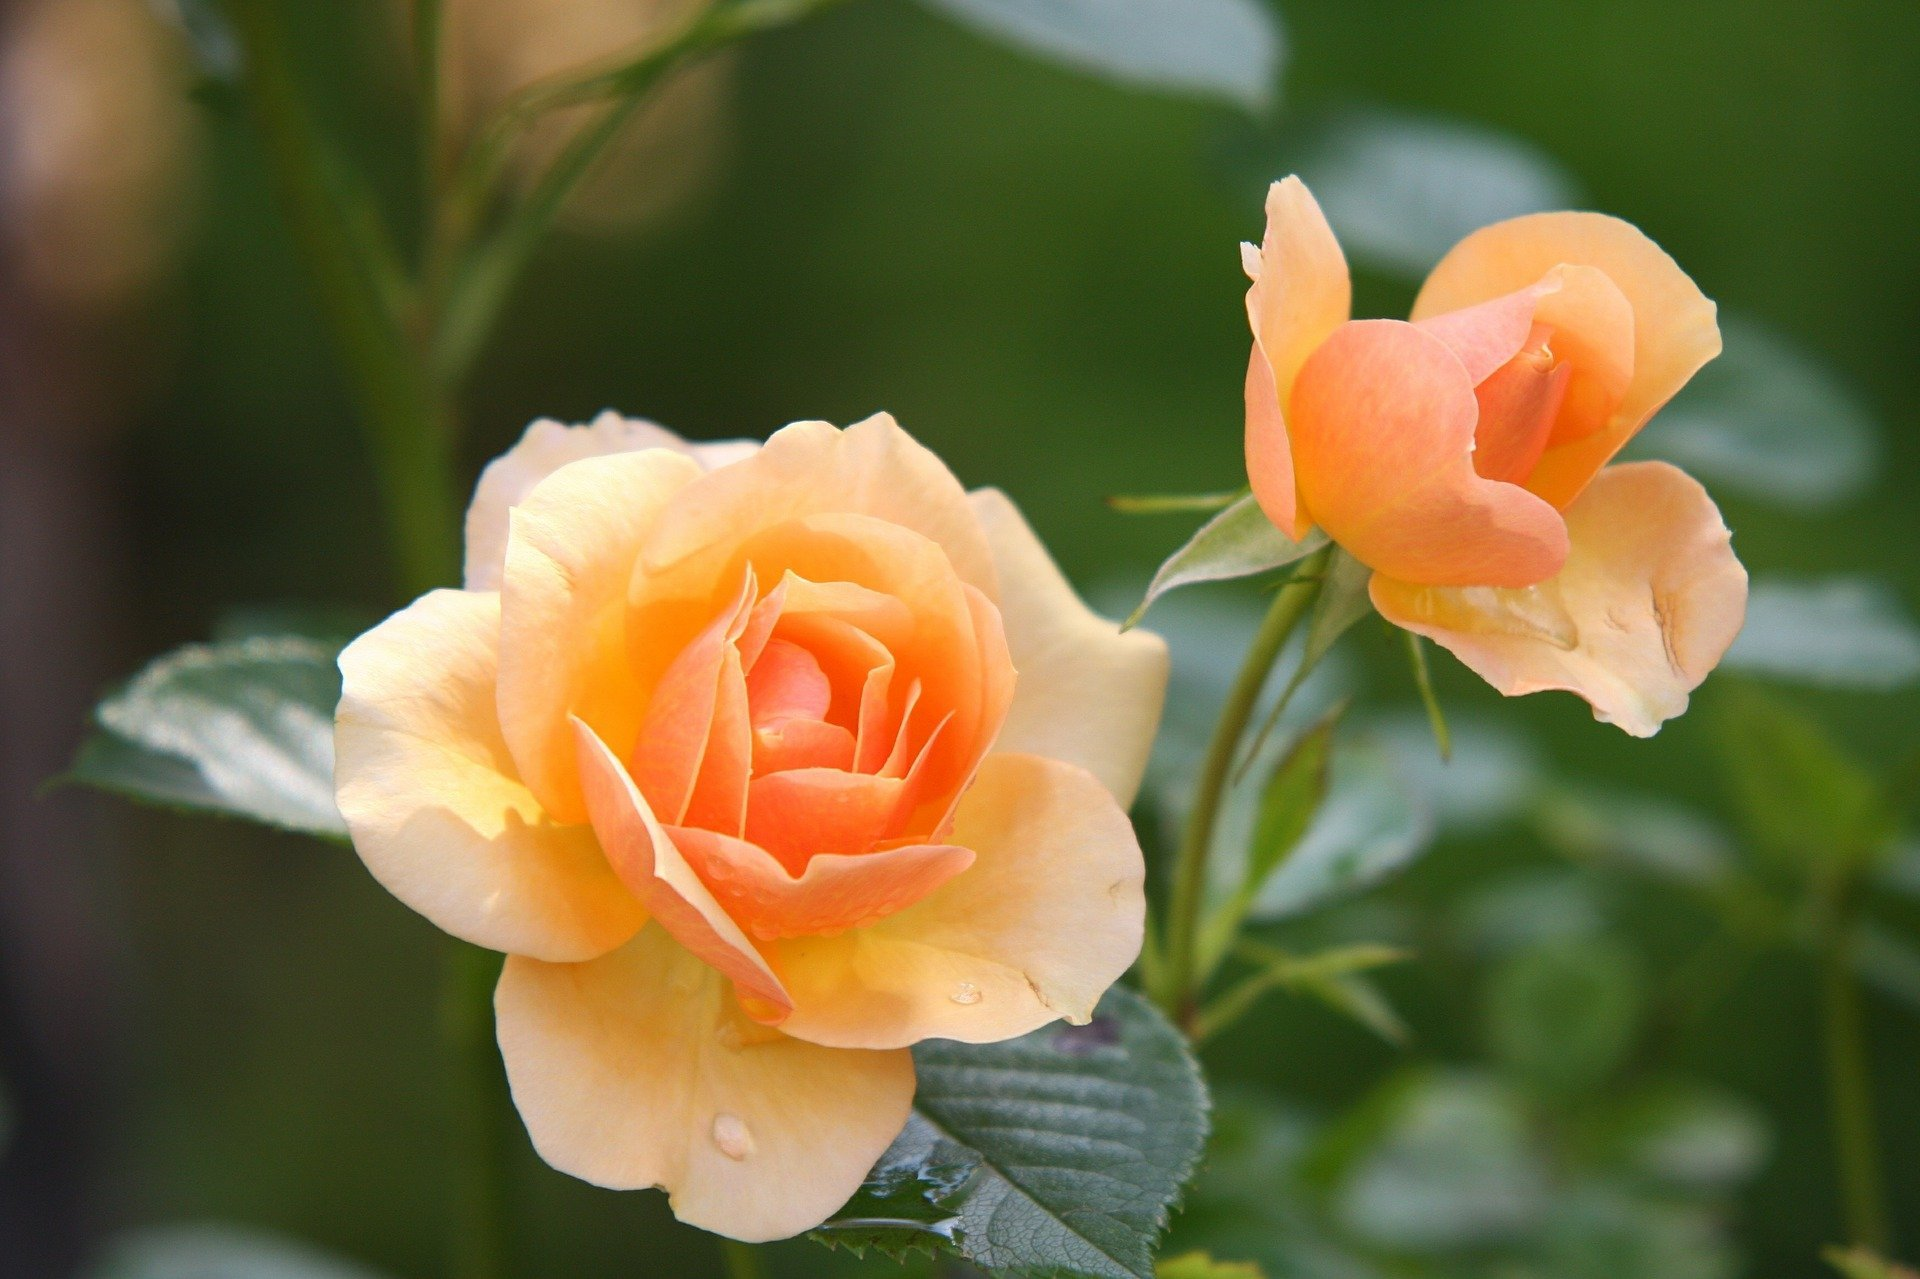 An image of two orange-colored rose flowers. | Photo: Pixabay